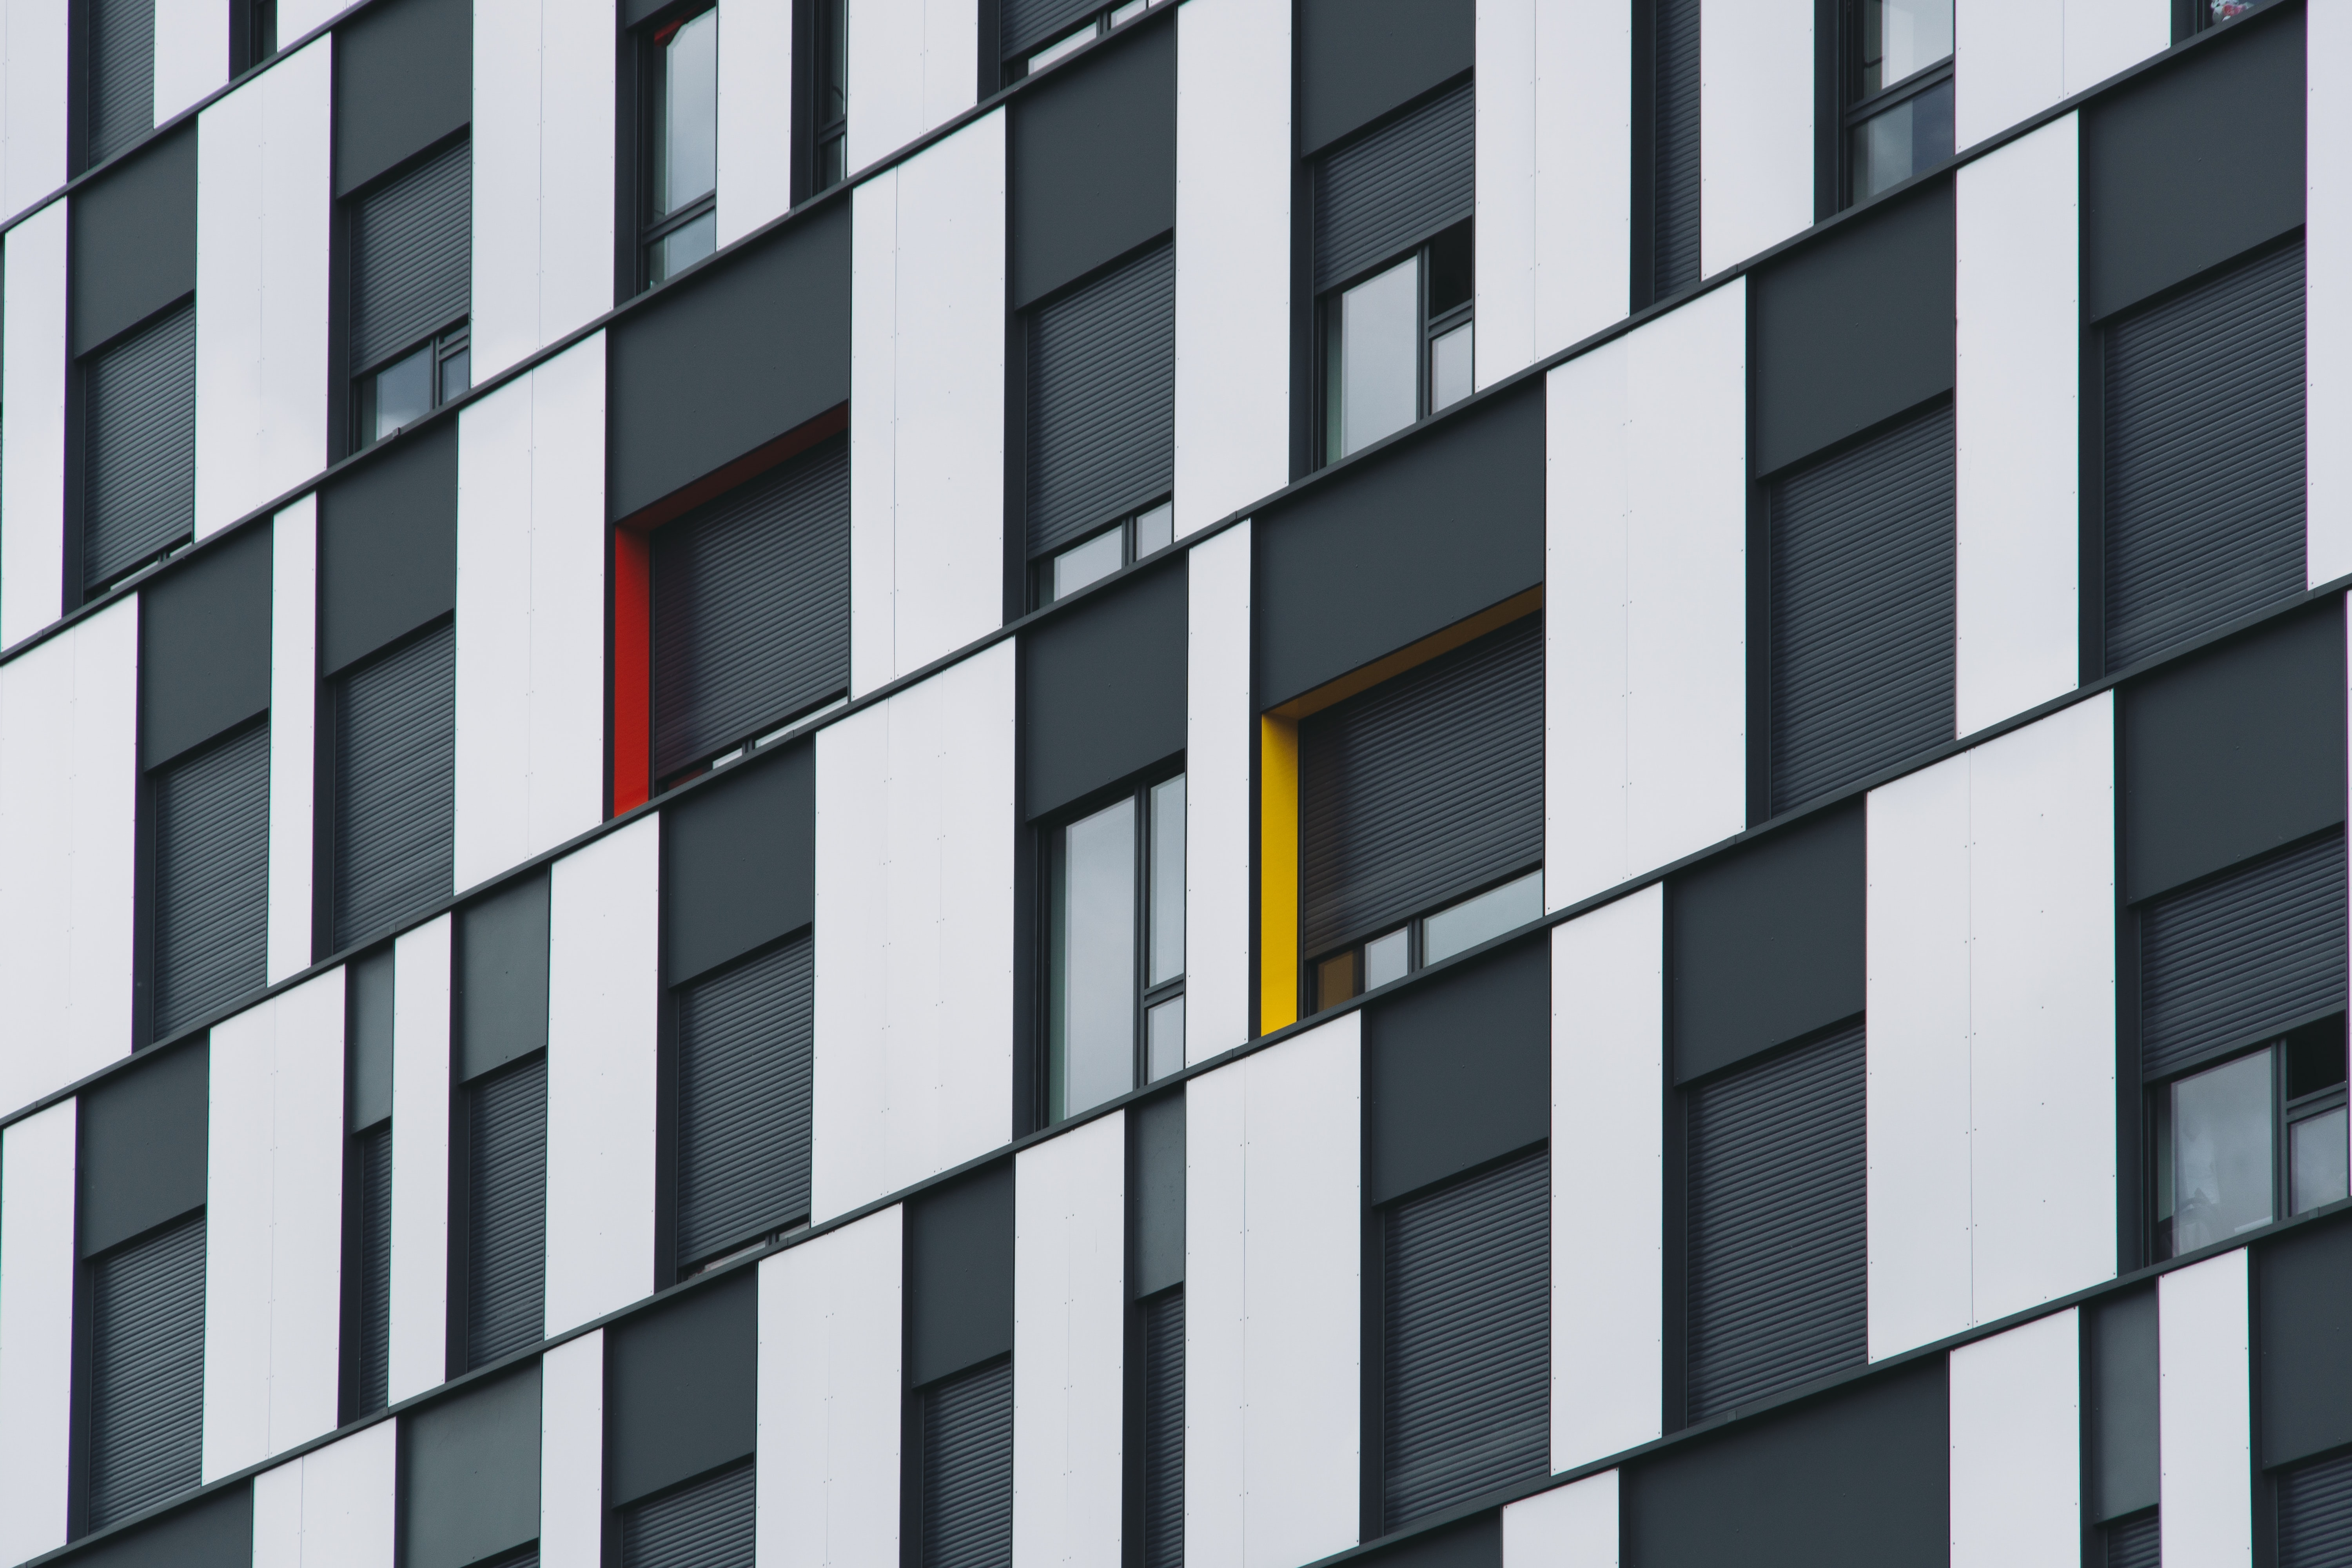 The 'Human Experience' Crucial to Environmental Building Solutions: Report